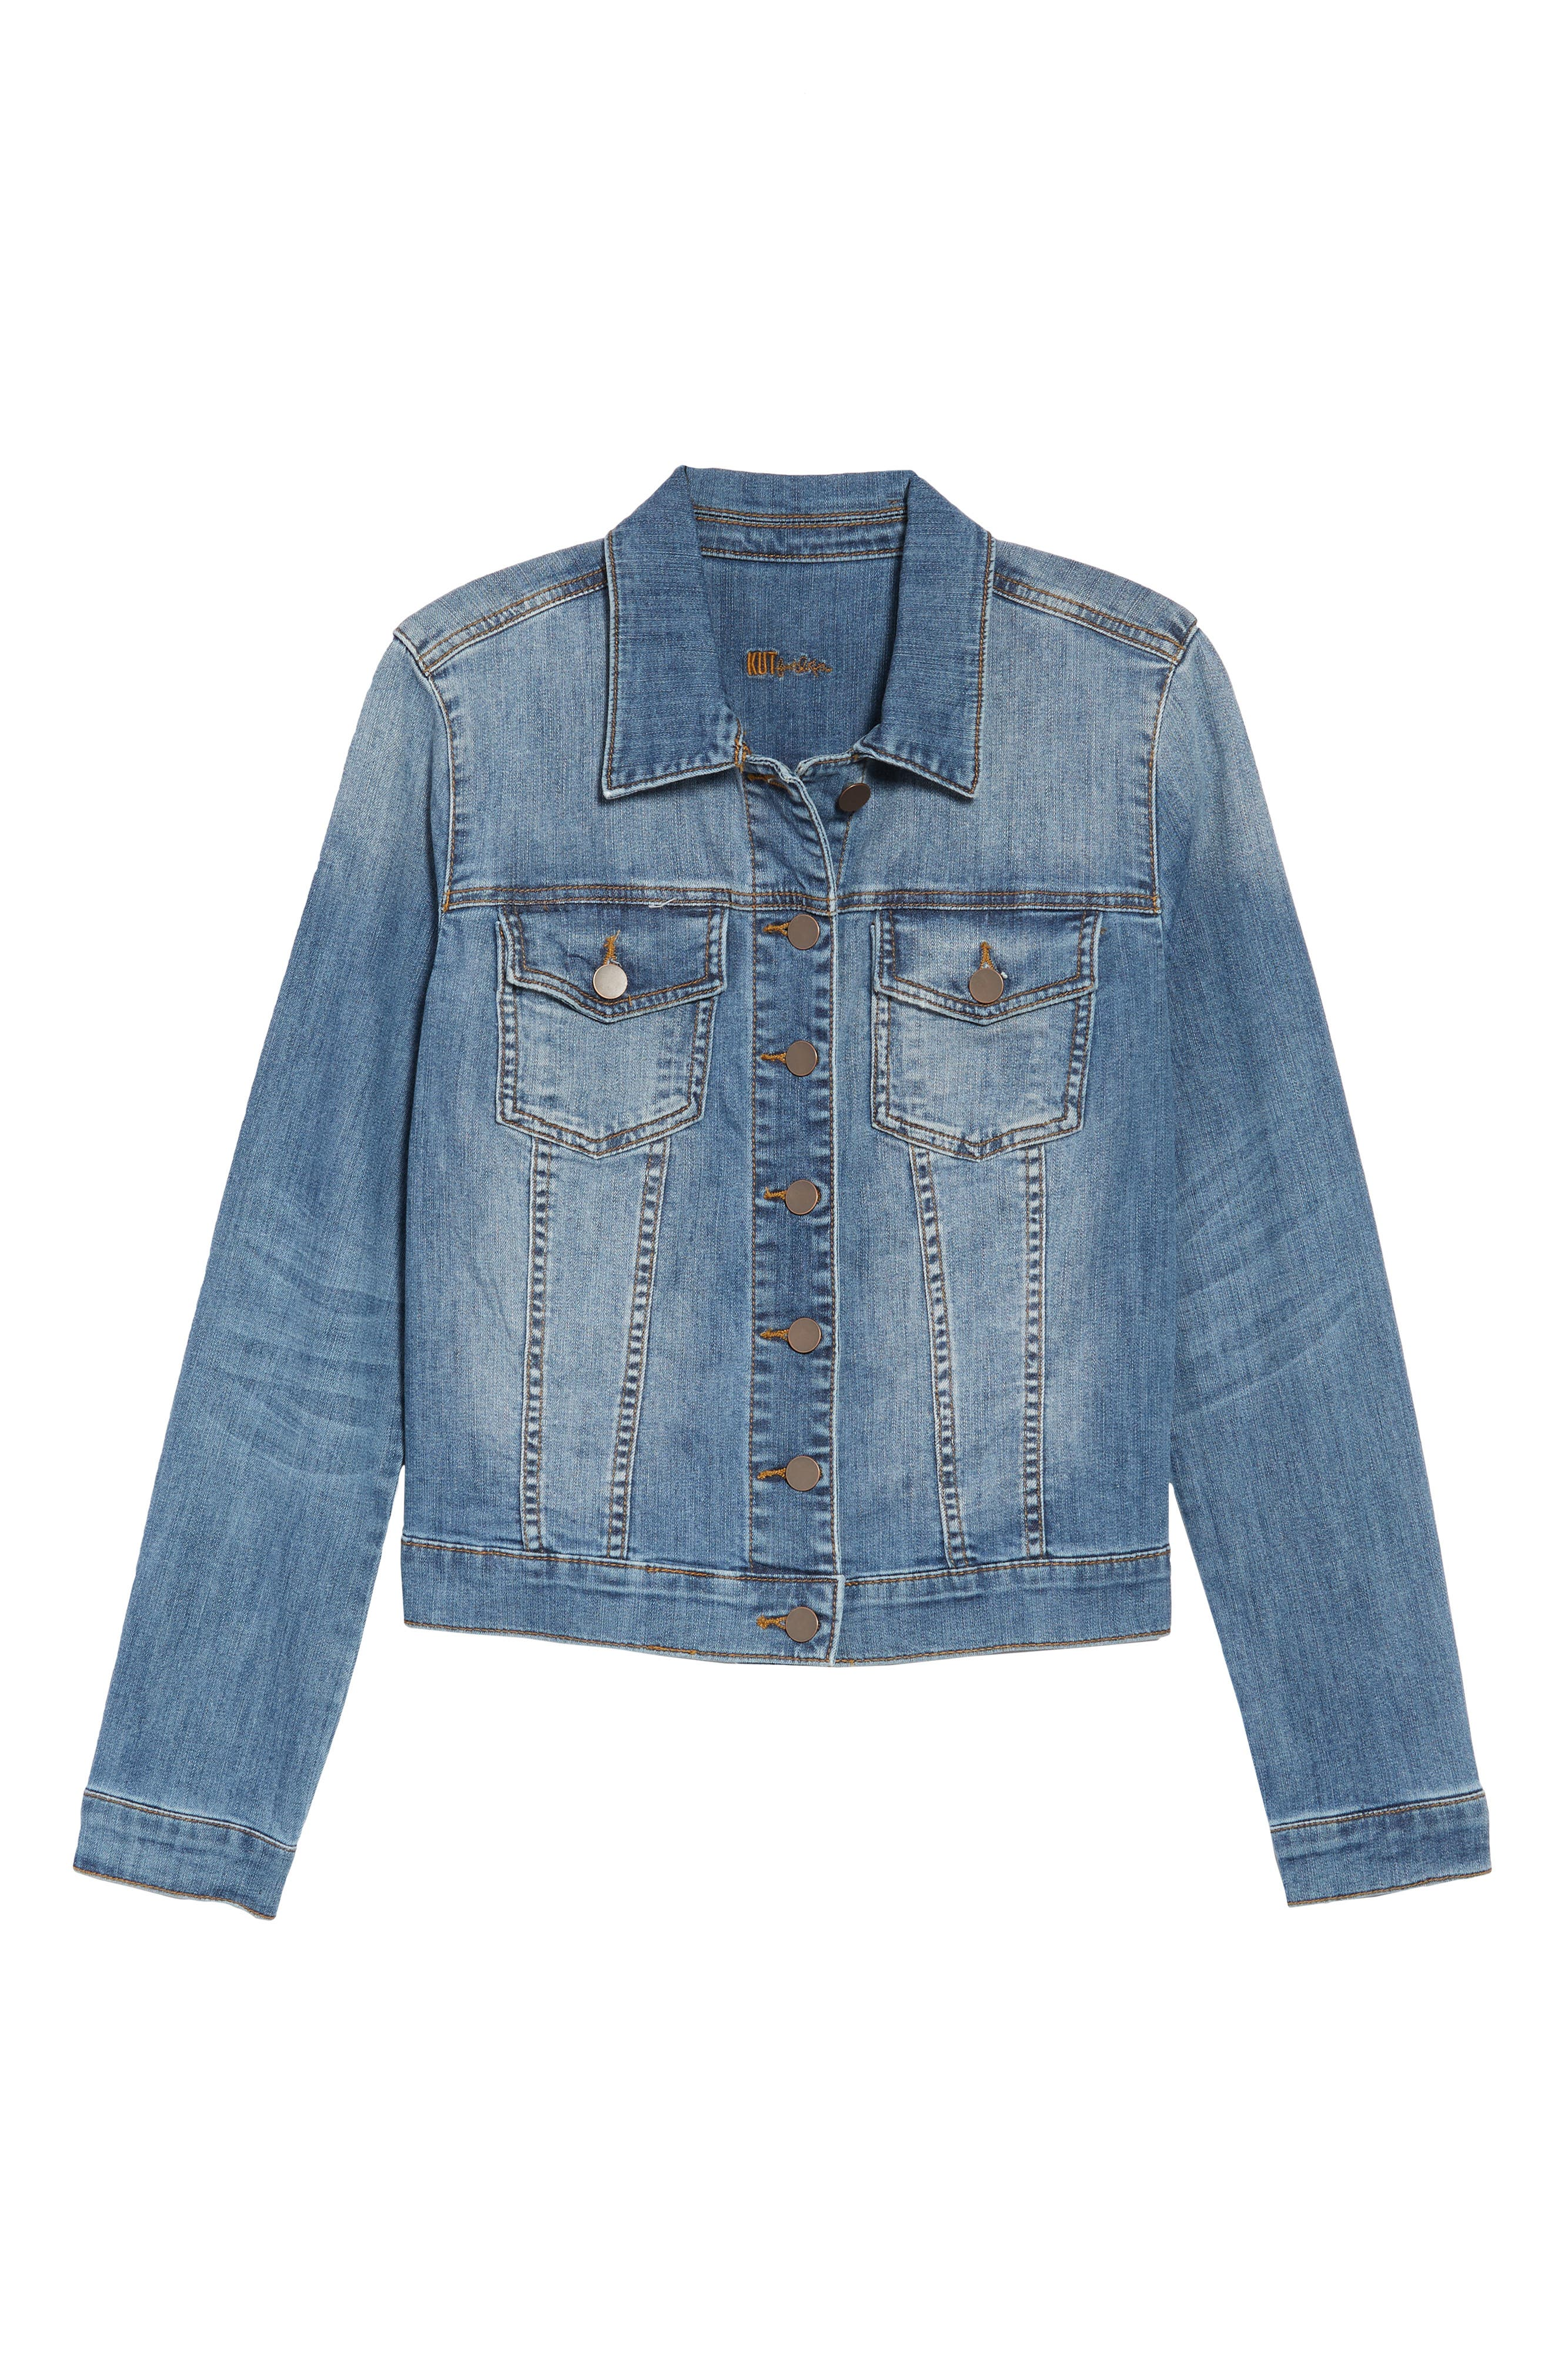 'Helena' Denim Jacket,                             Alternate thumbnail 22, color,